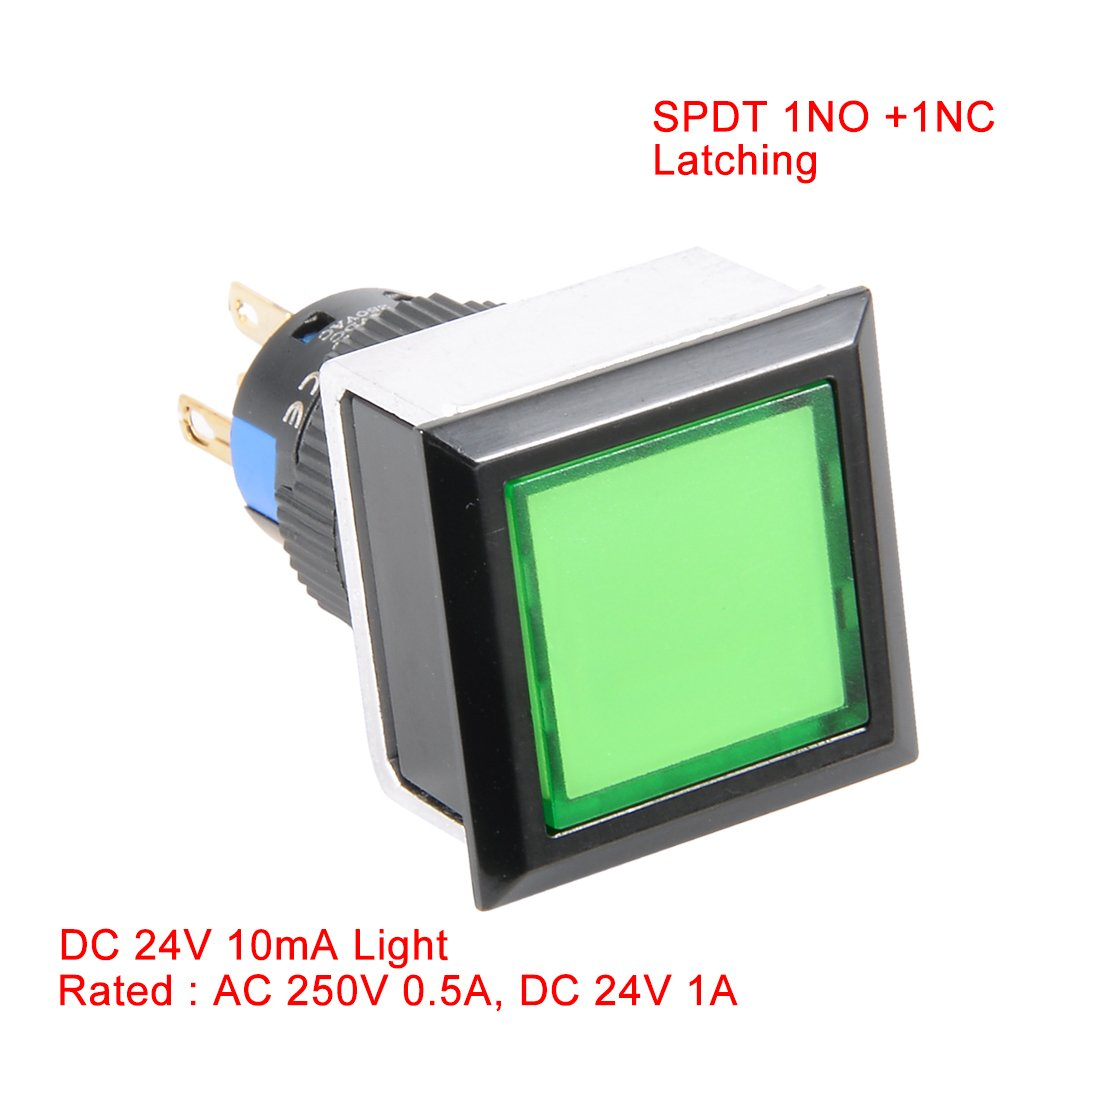 Uxcell Dc24v 10ma Green Lamp Square 5 Terminals Latching Dc 24v Push Button Selflock Switch Led Light Momentary 16mm Thread Spdt 1no 1nc Automotive